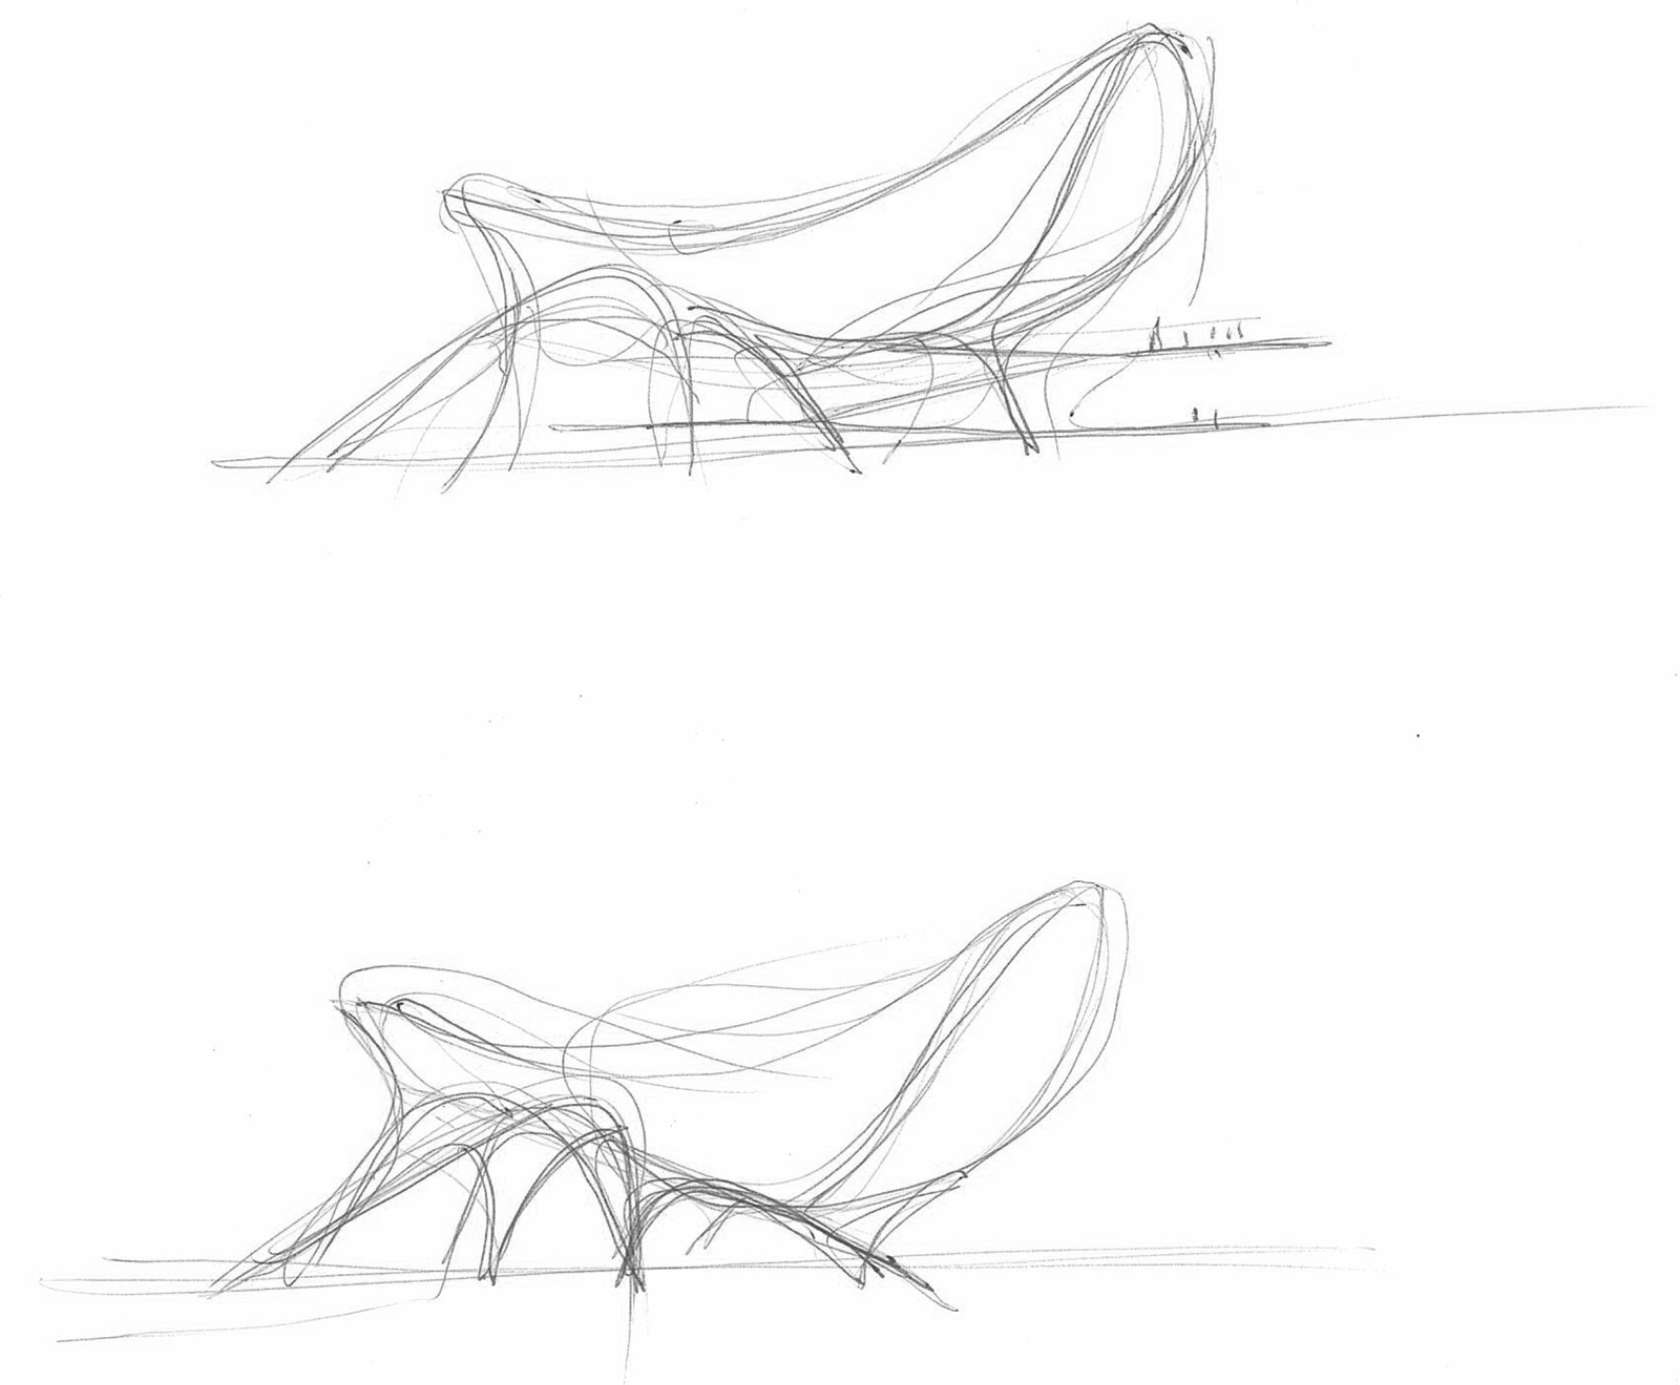 Zaha Hadid Drawing Techniques Drawing Isn t Dead -